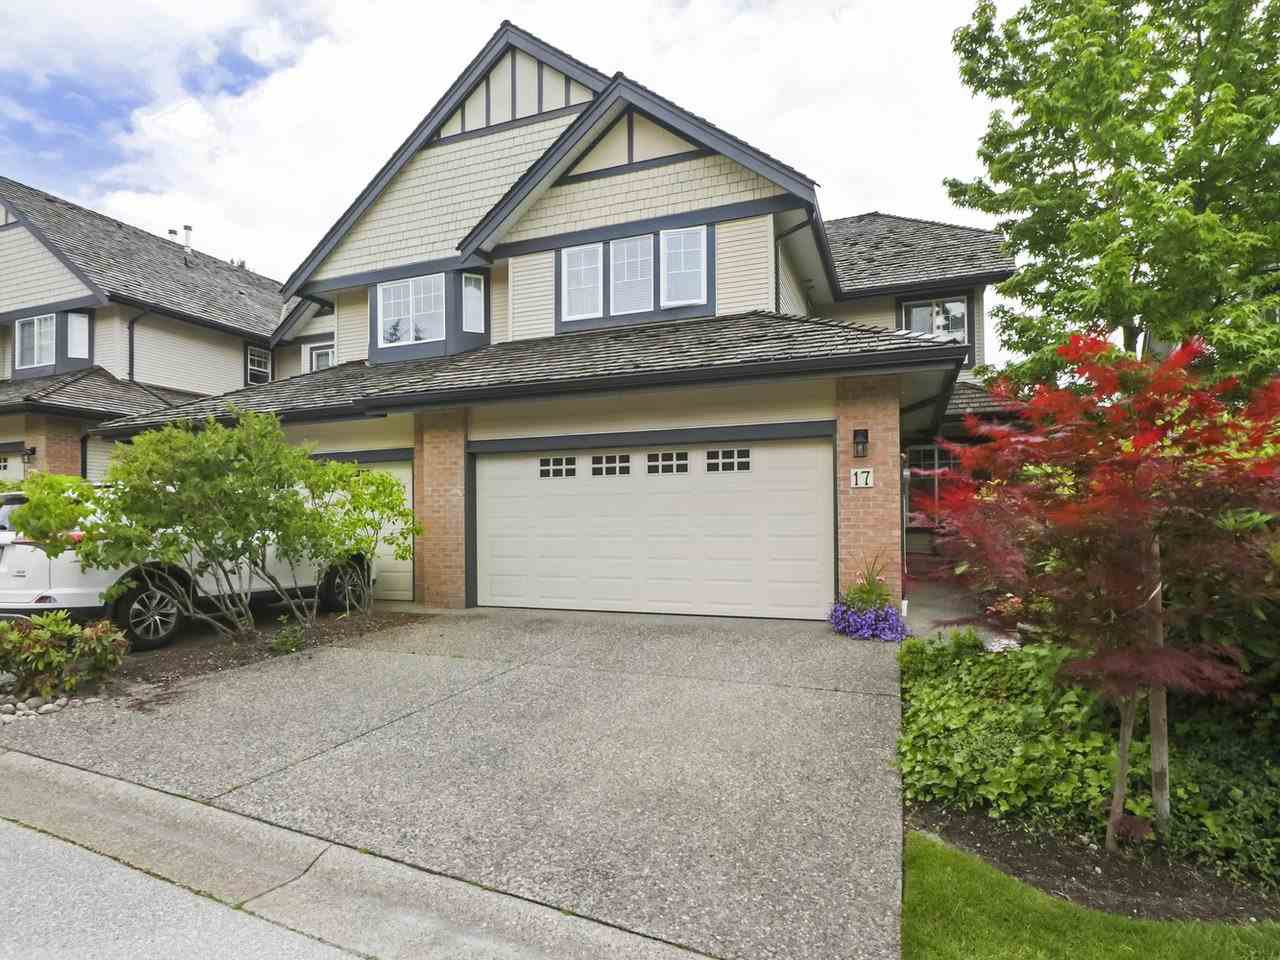 """Main Photo: 17 1765 PADDOCK Drive in Coquitlam: Westwood Plateau Townhouse for sale in """"Worthing Green"""" : MLS®# R2470789"""